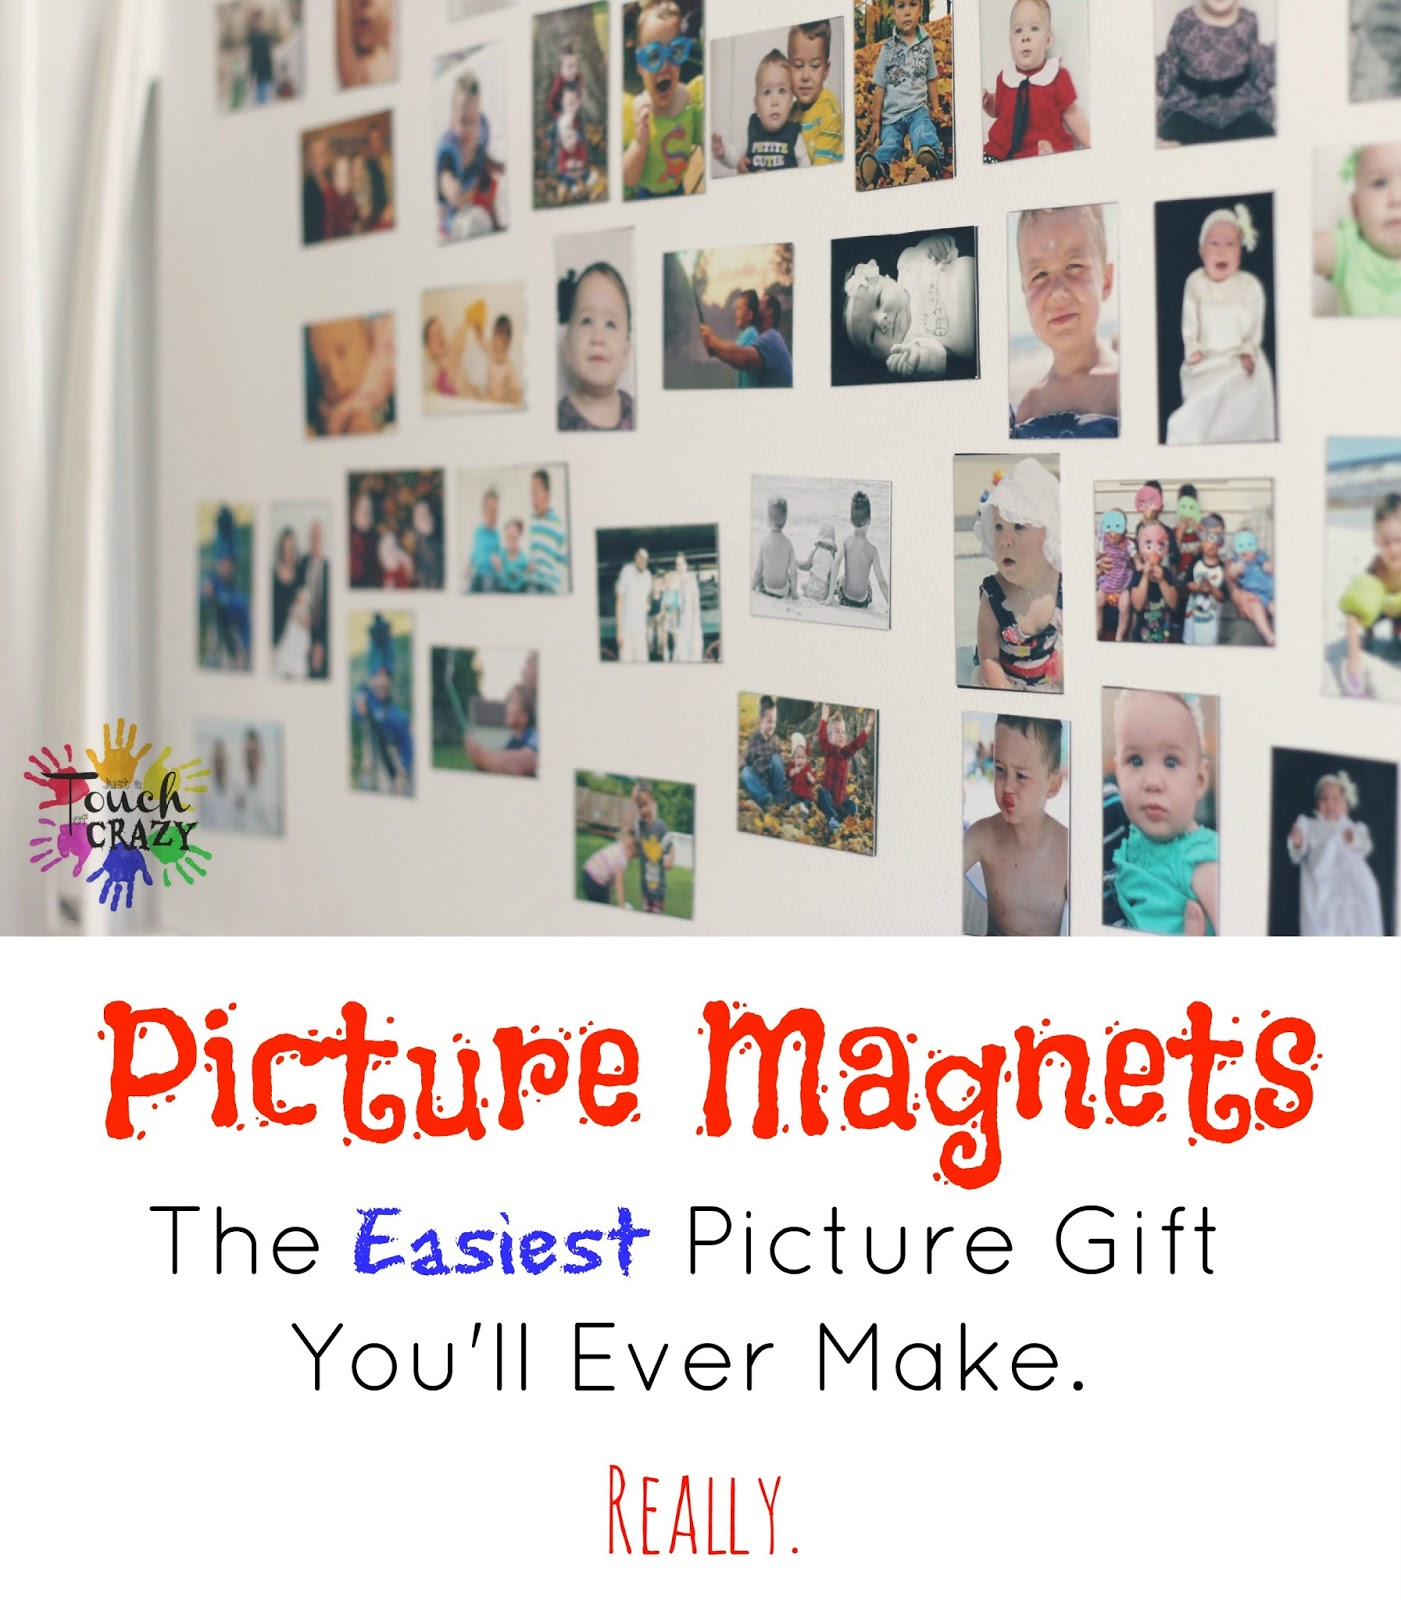 Just a Touch of Crazy: The Easiest Picture Gift You'll Ever Make